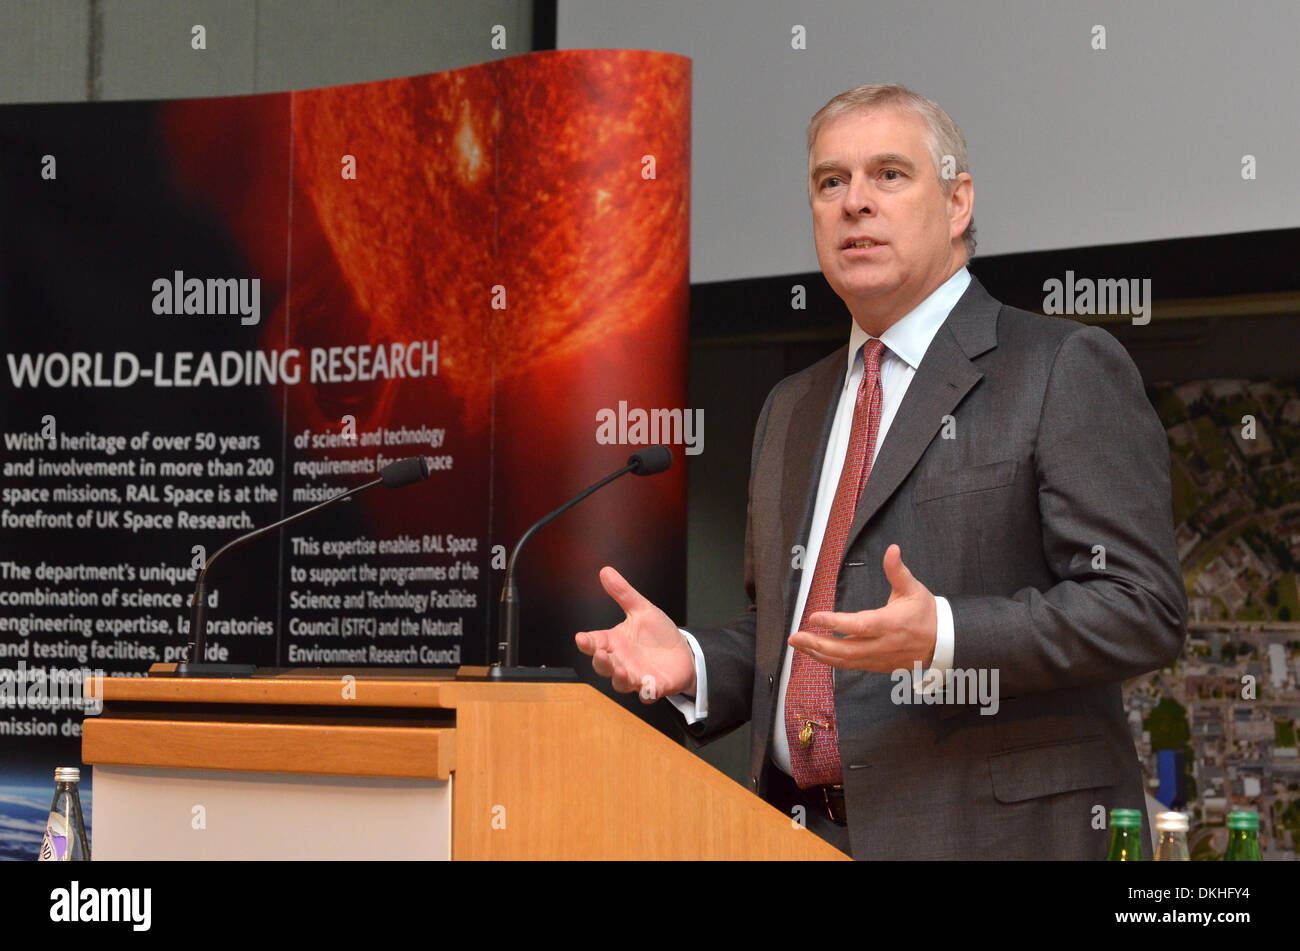 Rutherford Labs, Oxfordshire, UK. 5th December 2013. HRH Prince Andrew, the Duke of York, speaking  at the Rutherford Stock Photo